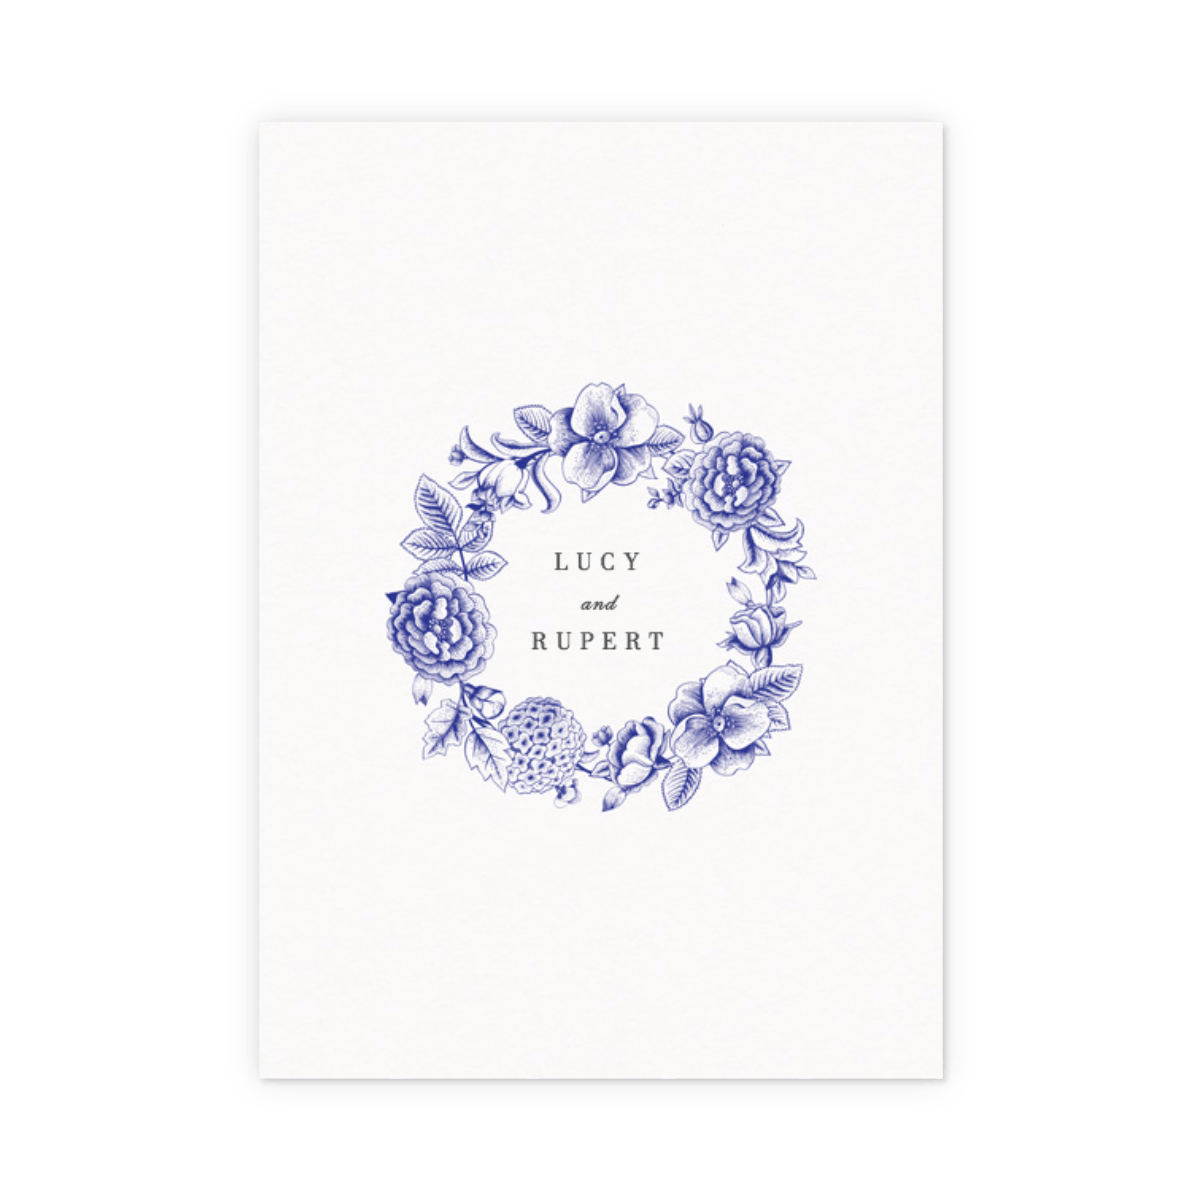 Https%3a%2f%2fwww.papier.com%2fproduct image%2f5736%2f4%2fblue hydrangea 1504 arriere 1459938753.png?ixlib=rb 1.1